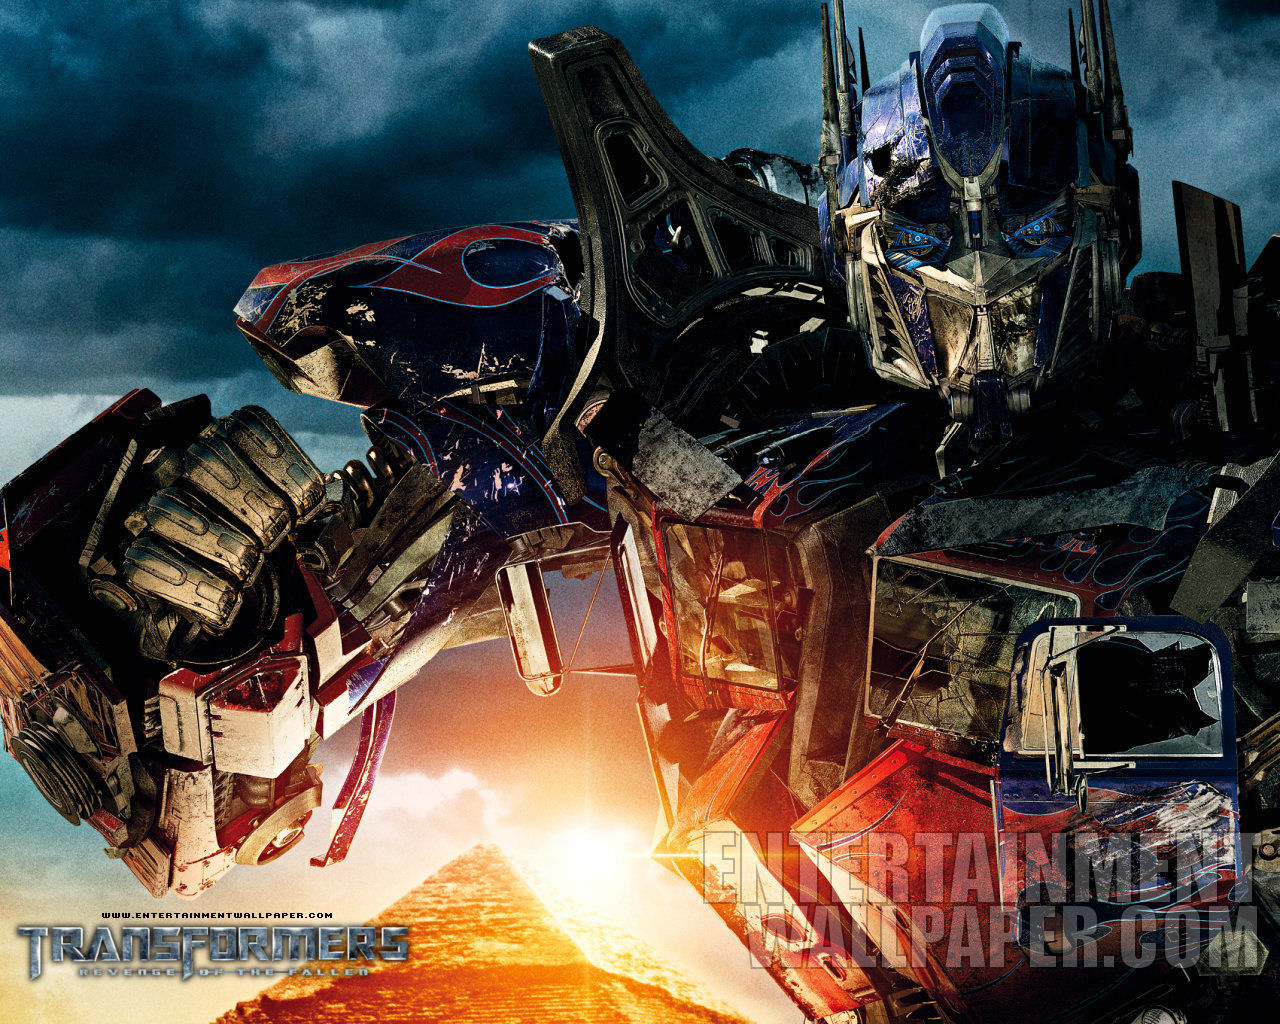 http://images2.fanpop.com/images/photos/6700000/Transformers-Revenge-of-the-Fallen-transformers-2-6727750-1280-1024.jpg